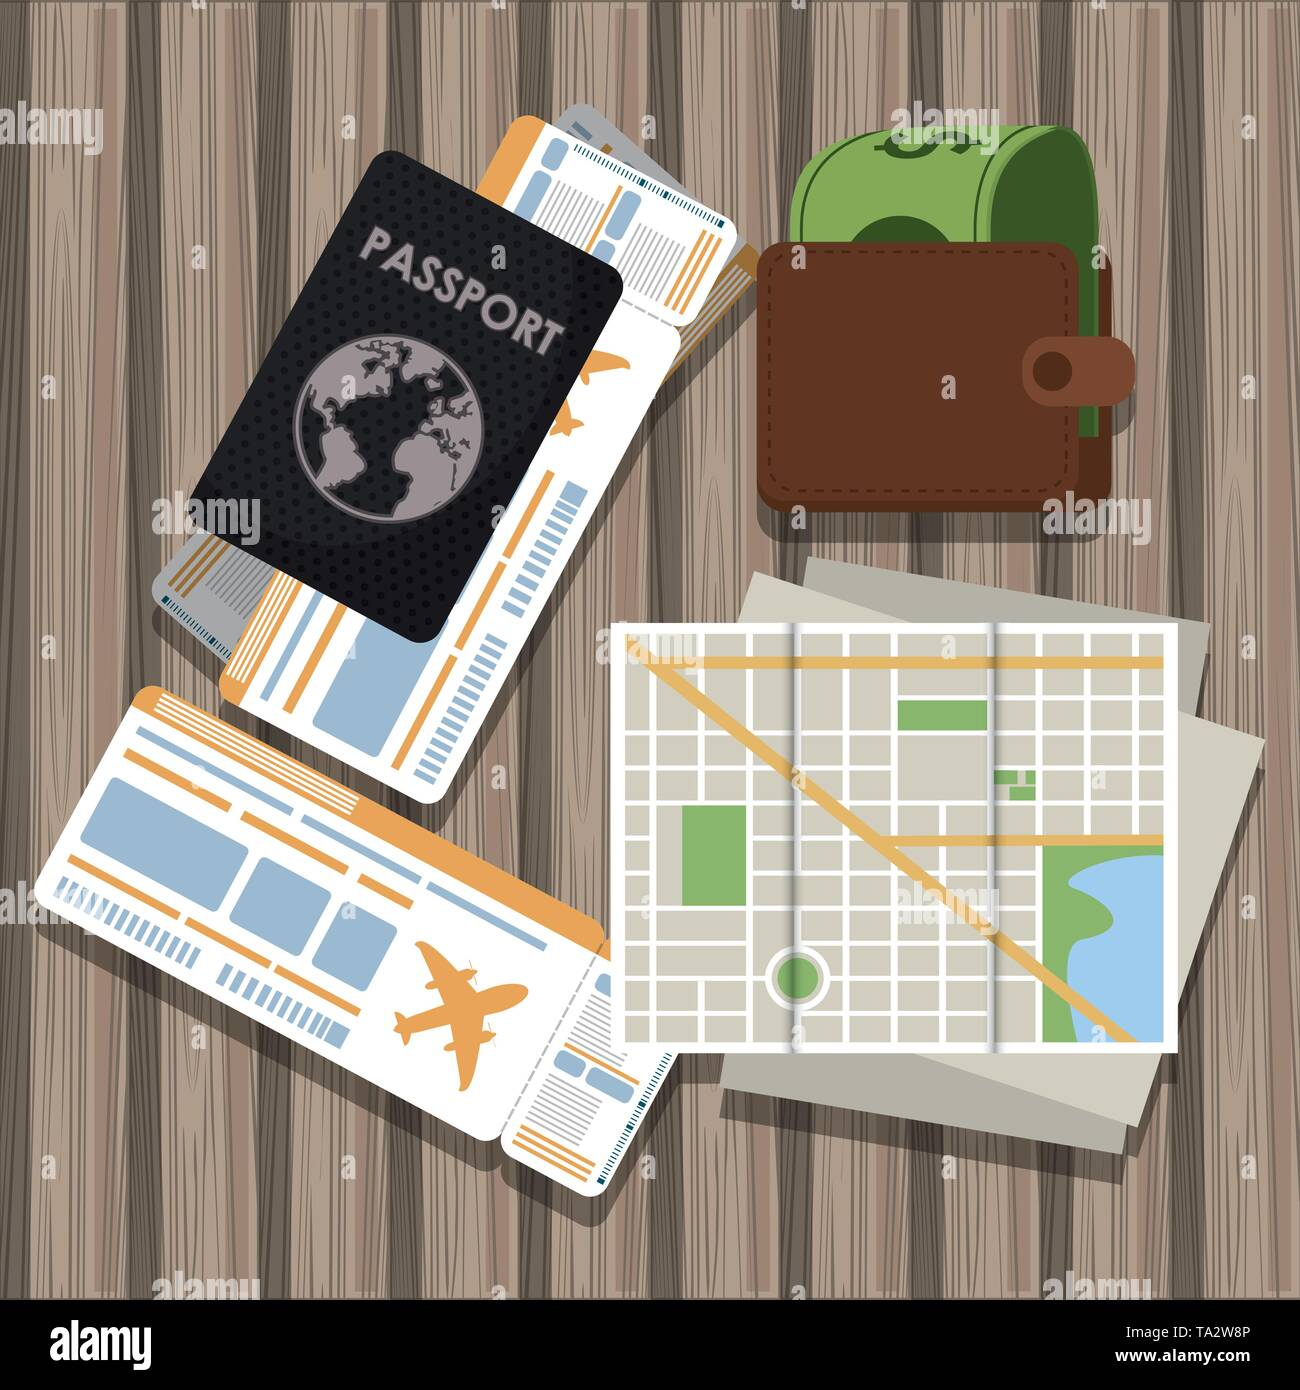 Travel and tourism elements - Stock Image